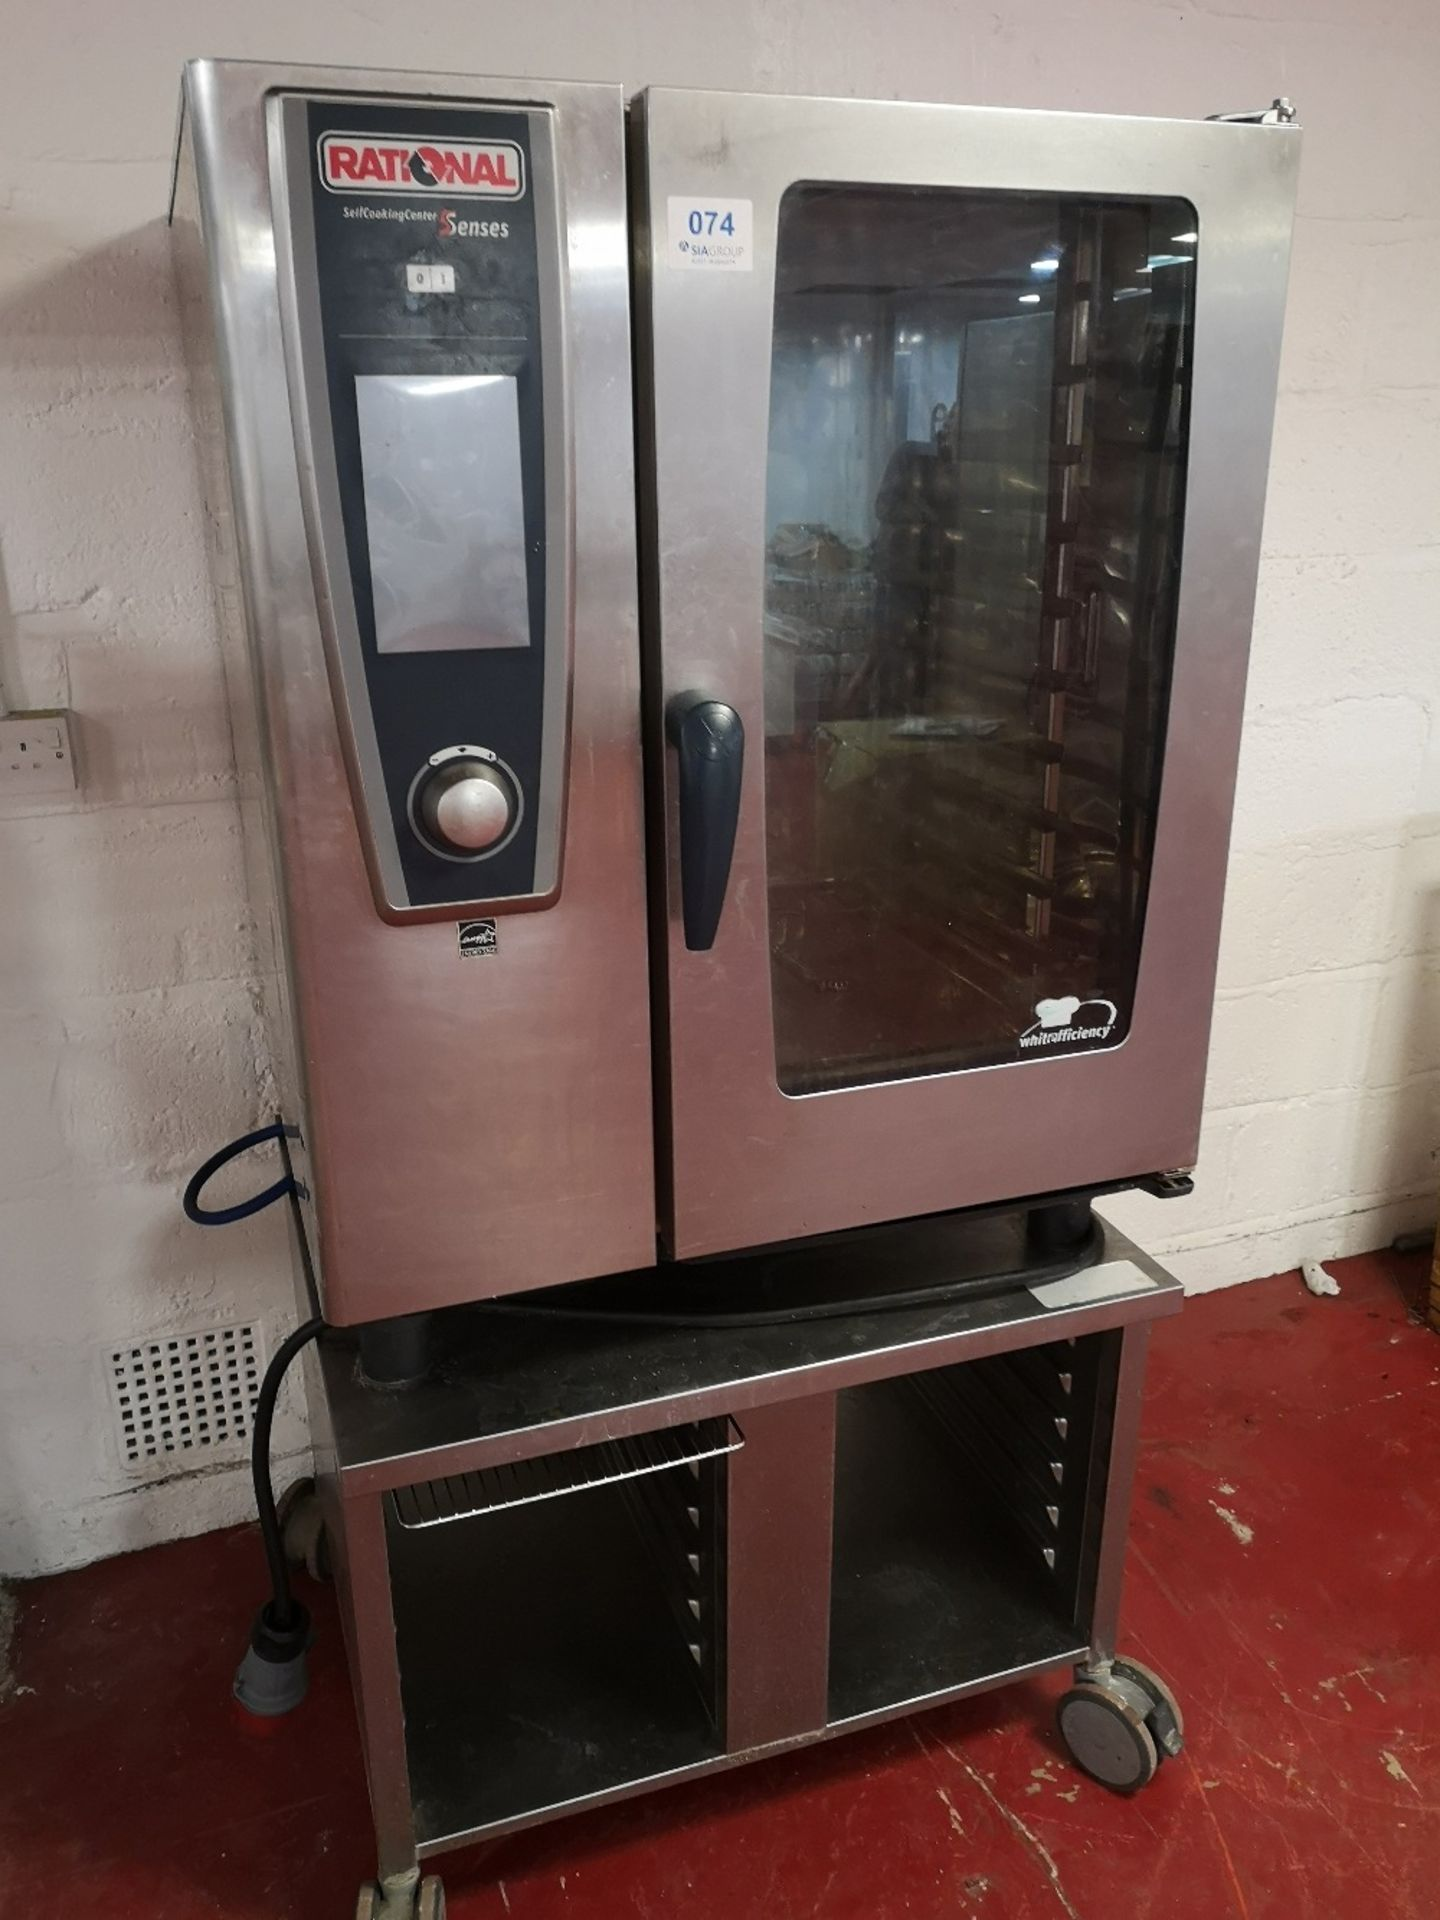 Rational SCCWE101 5 Senses 10 grid Electric Combination Oven on Mobile Stainless Steel Stand - Image 2 of 5